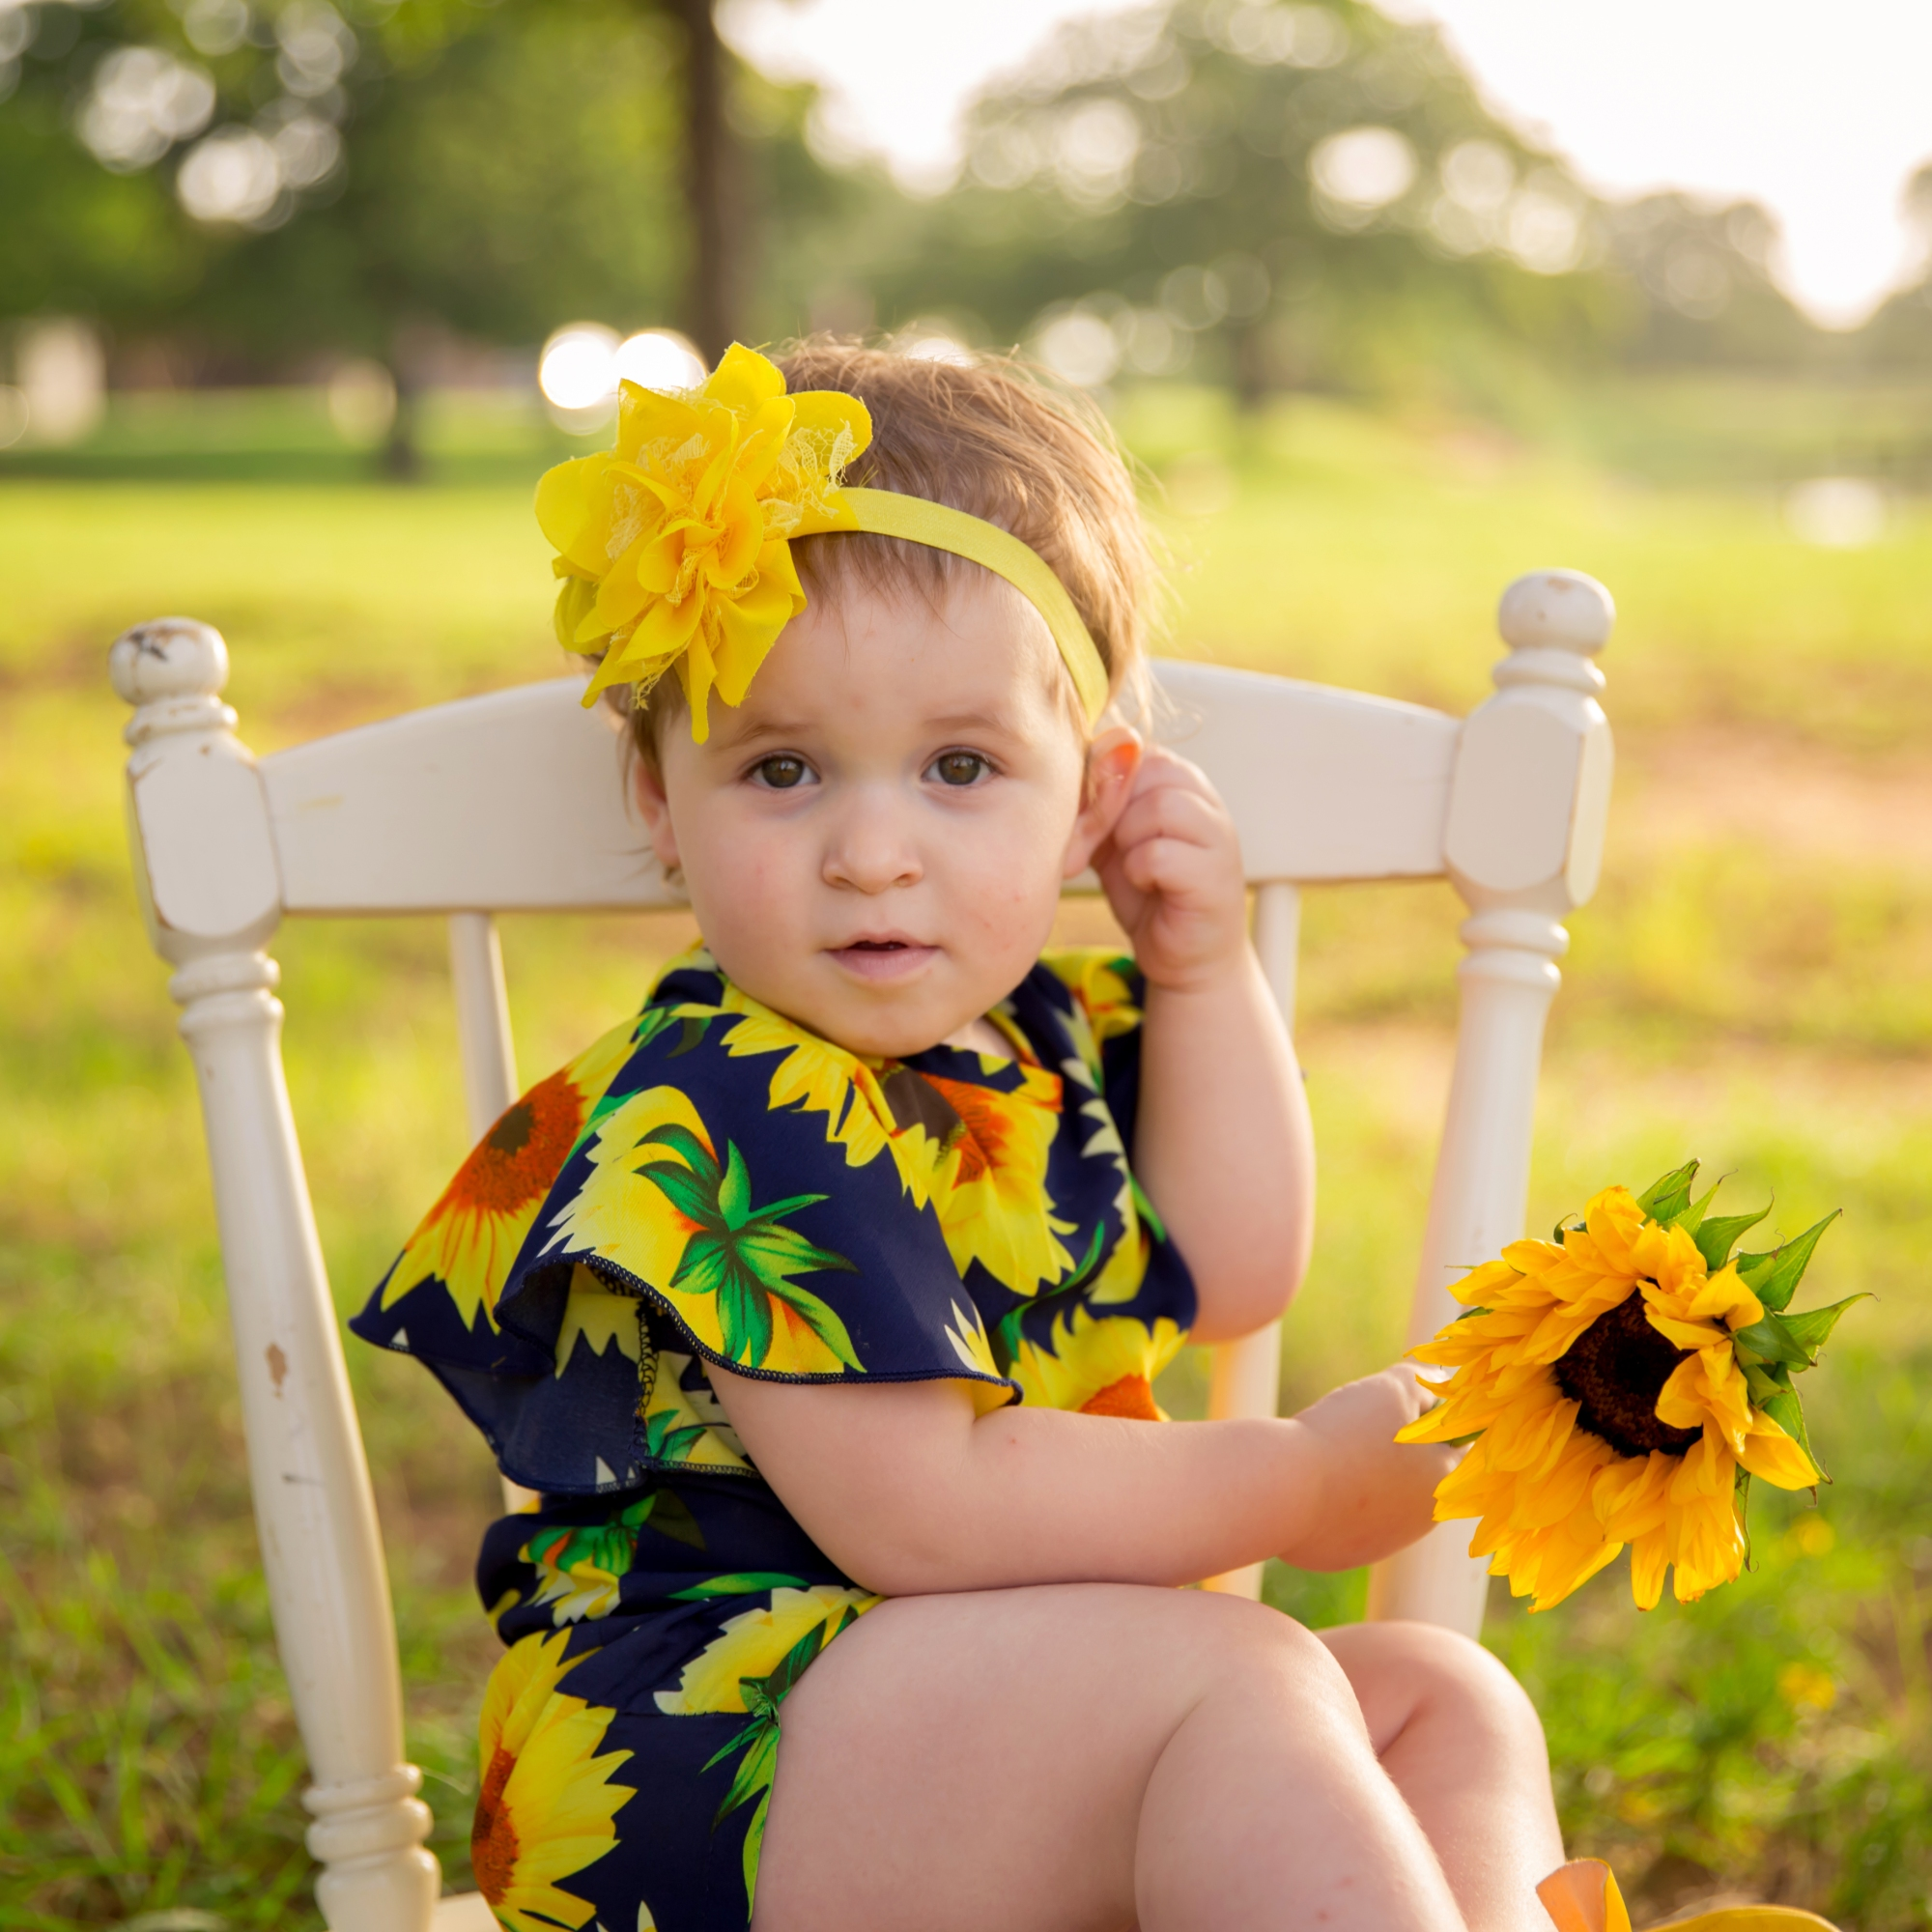 Sunflower Toddler Child Milestone Photography Arlington Texas